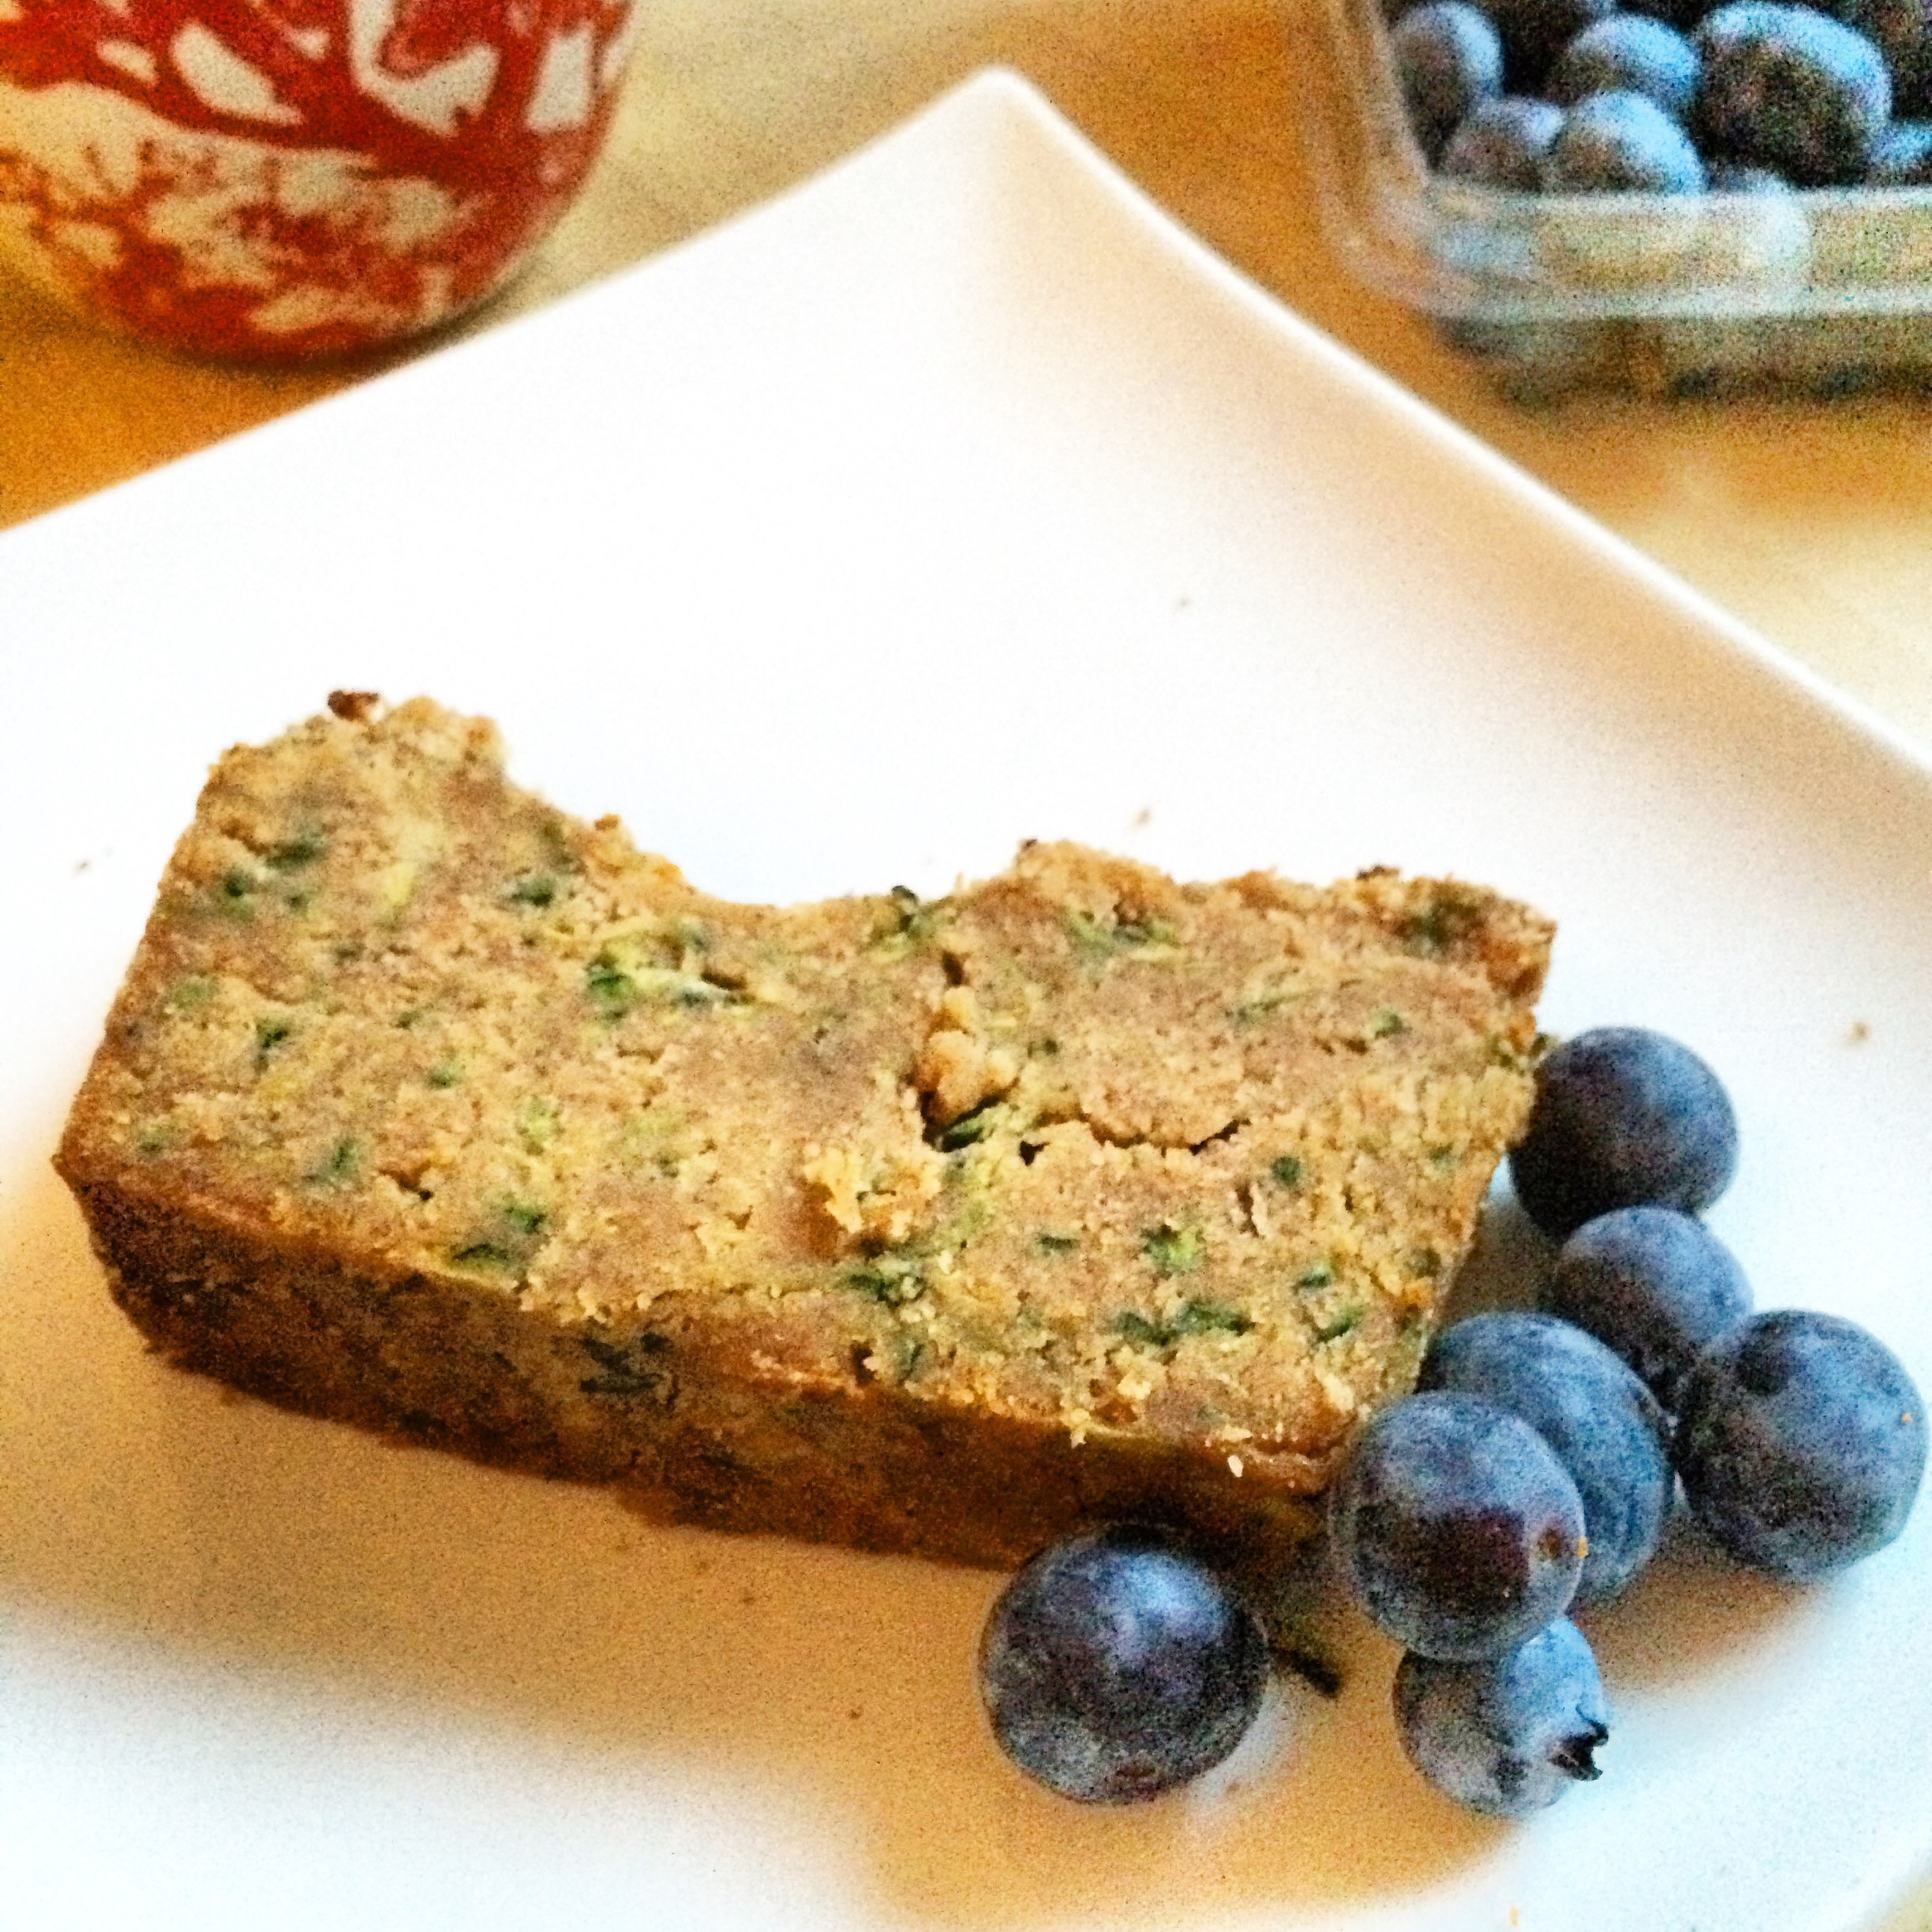 Delicious AIP Paleo Zucchini Bread - tastes like childhood!